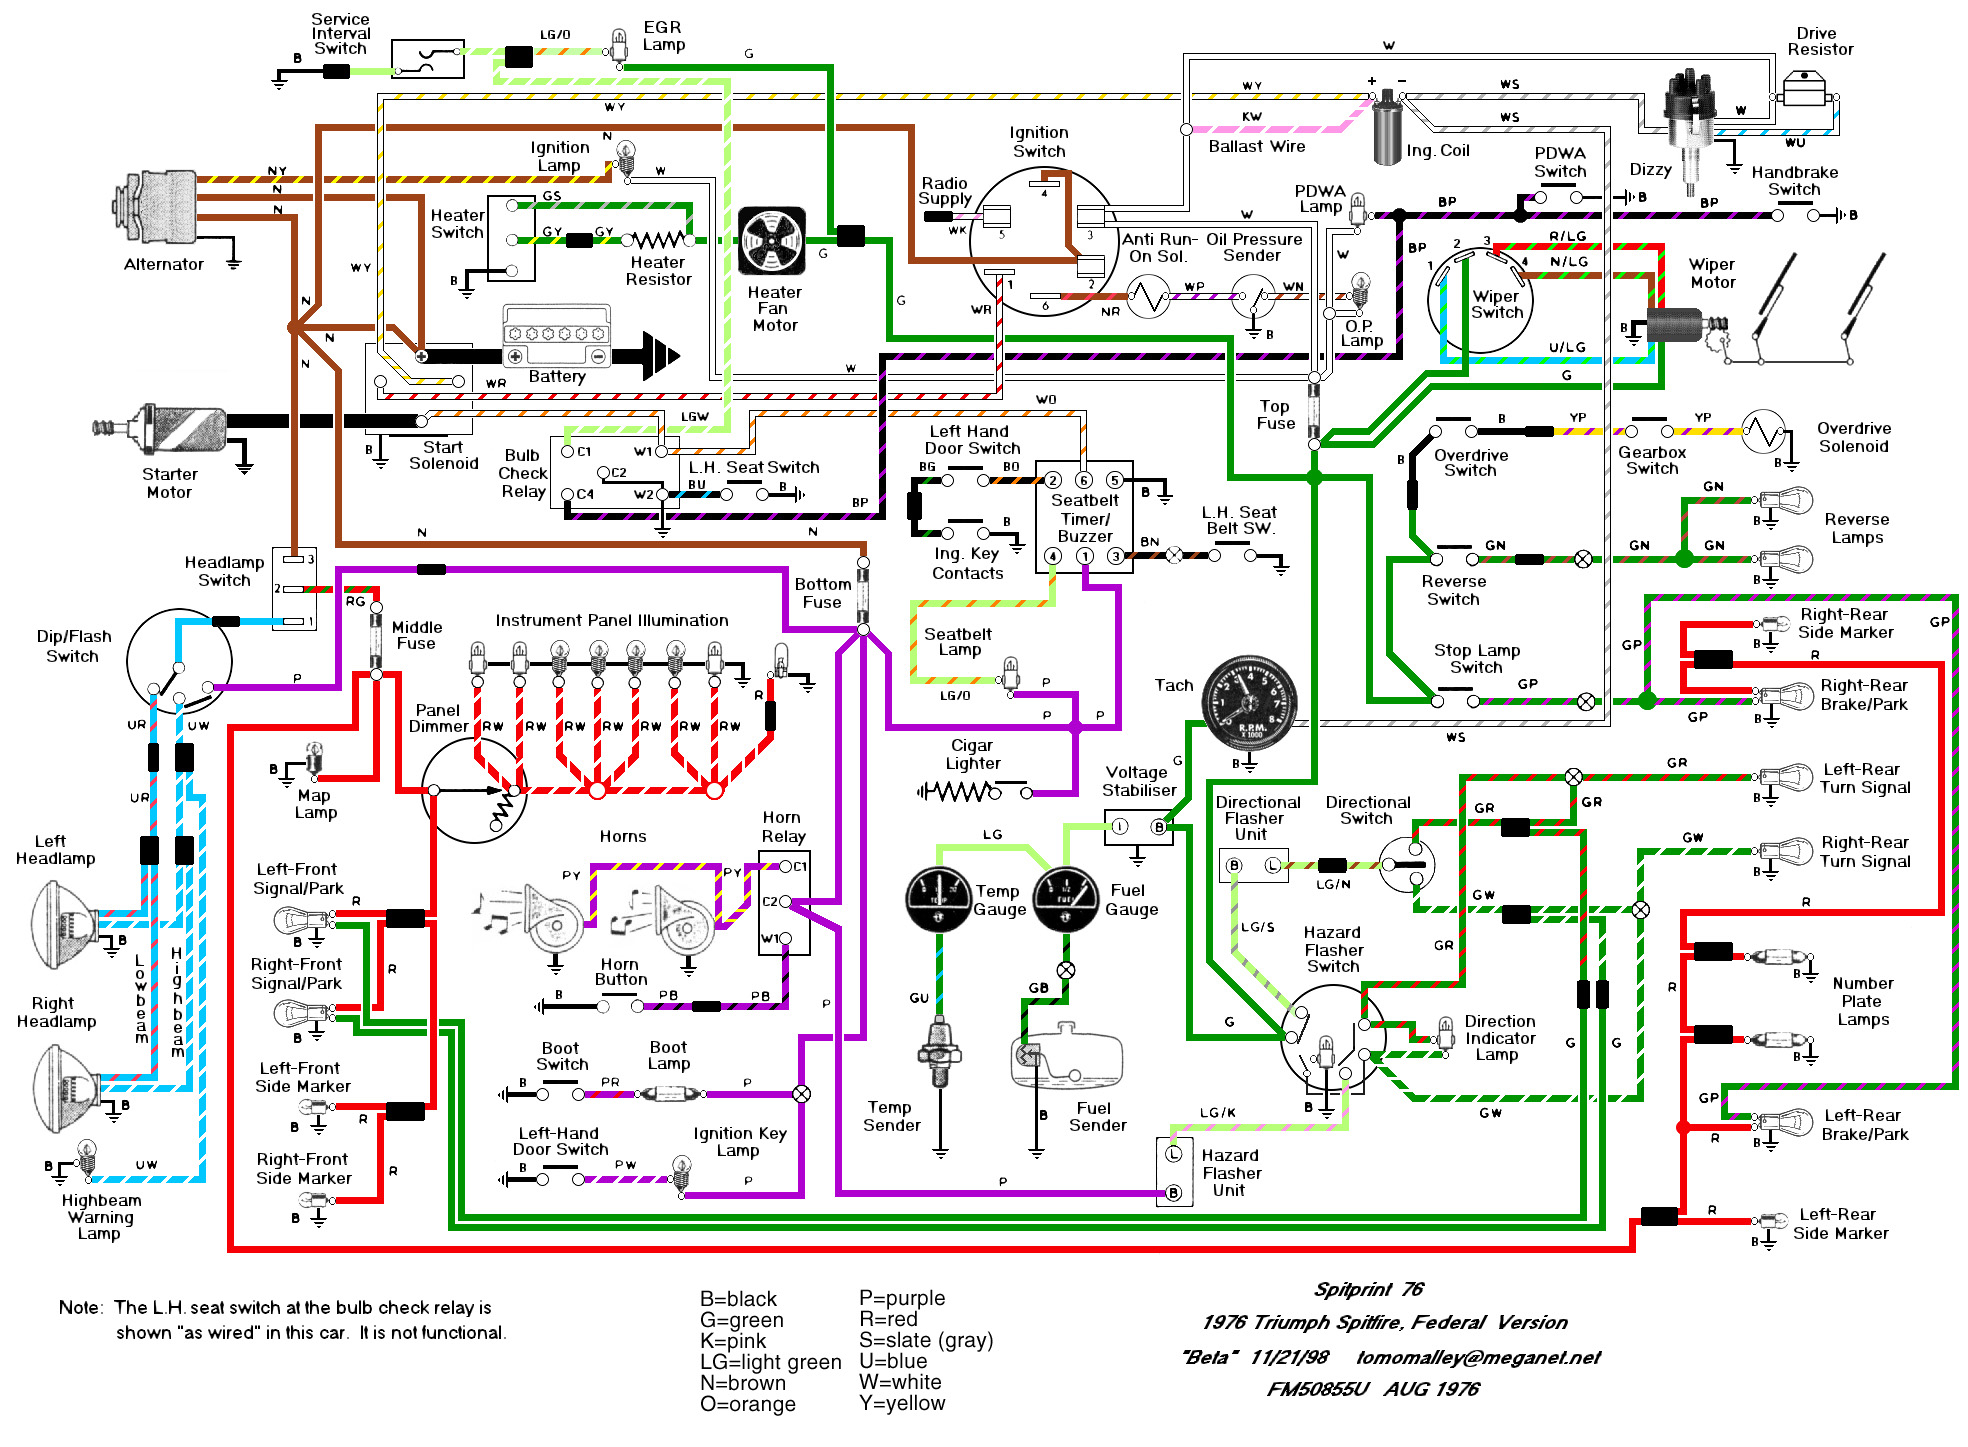 76diagram wiring diagram for a car wiring wiring diagrams instruction auto electrical wiring diagrams at gsmportal.co